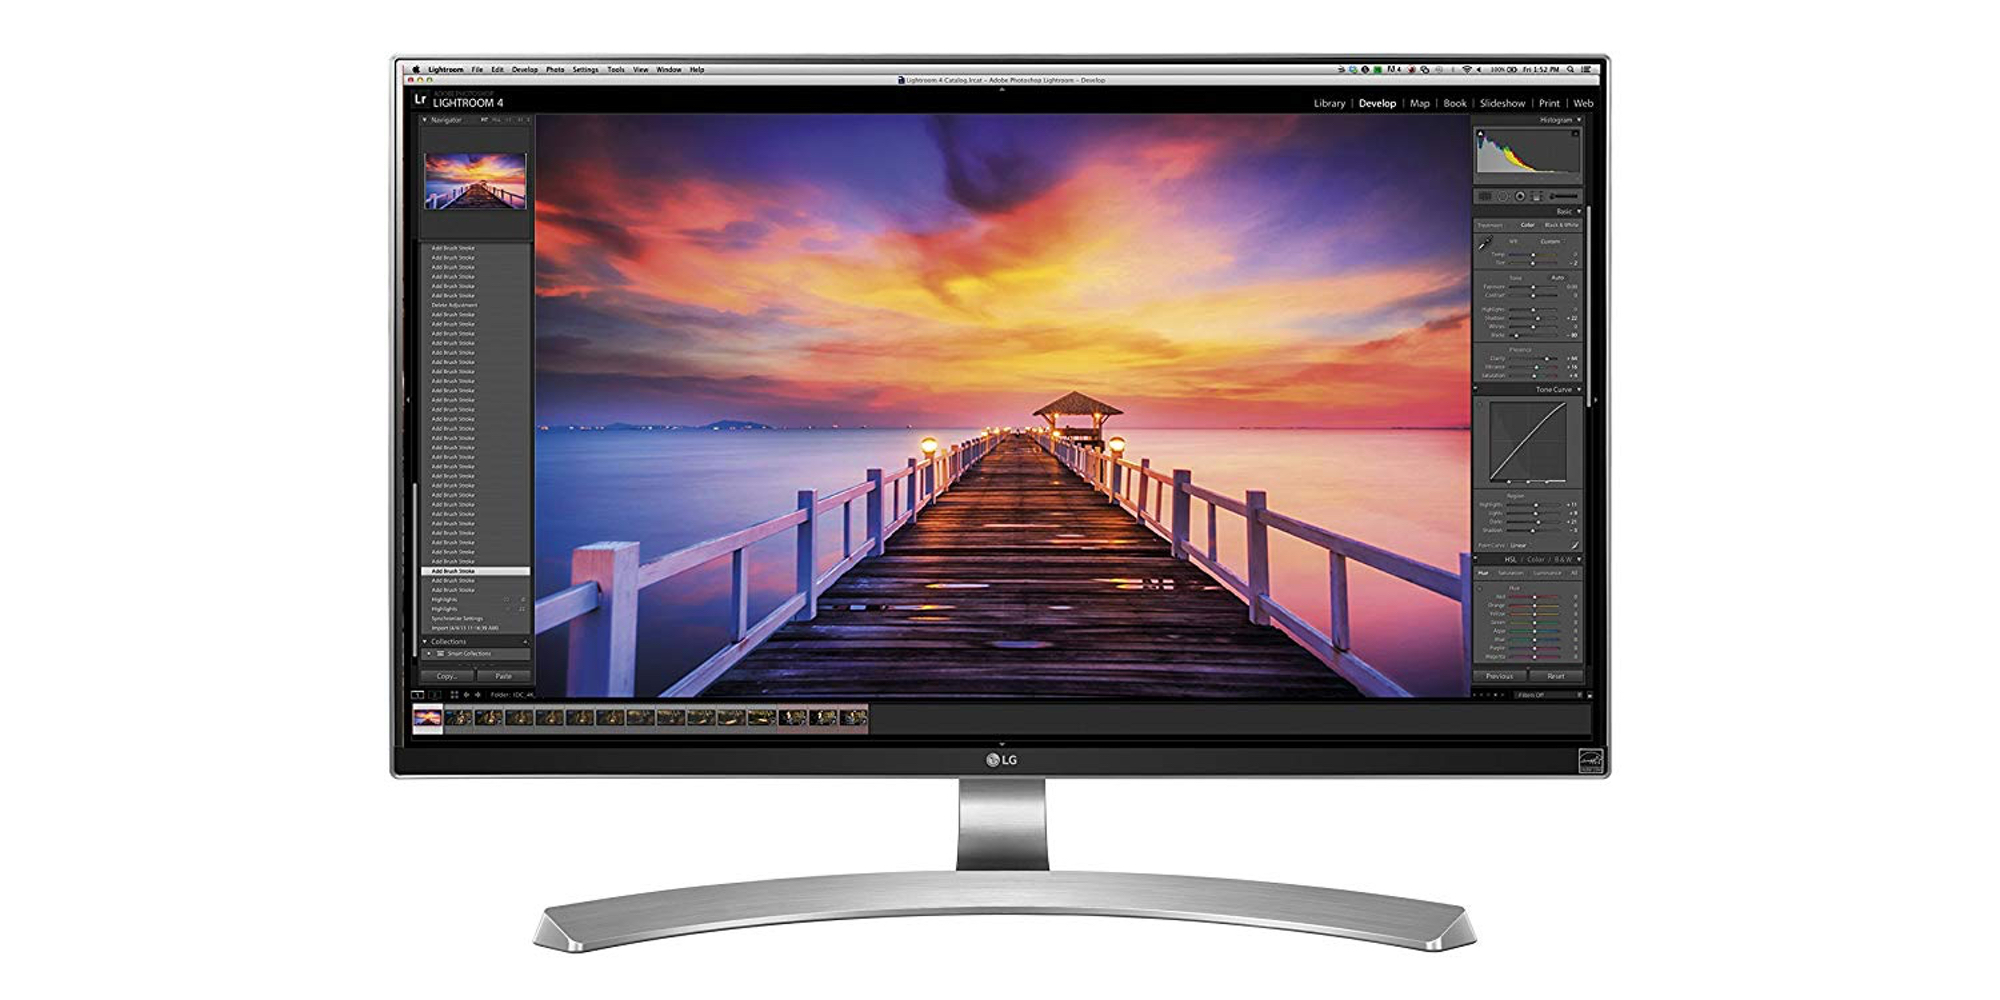 Early Black Friday monitors deals: LG 4K 27″ USB-C $497, LG 29″ UltraWide $190, more from $90